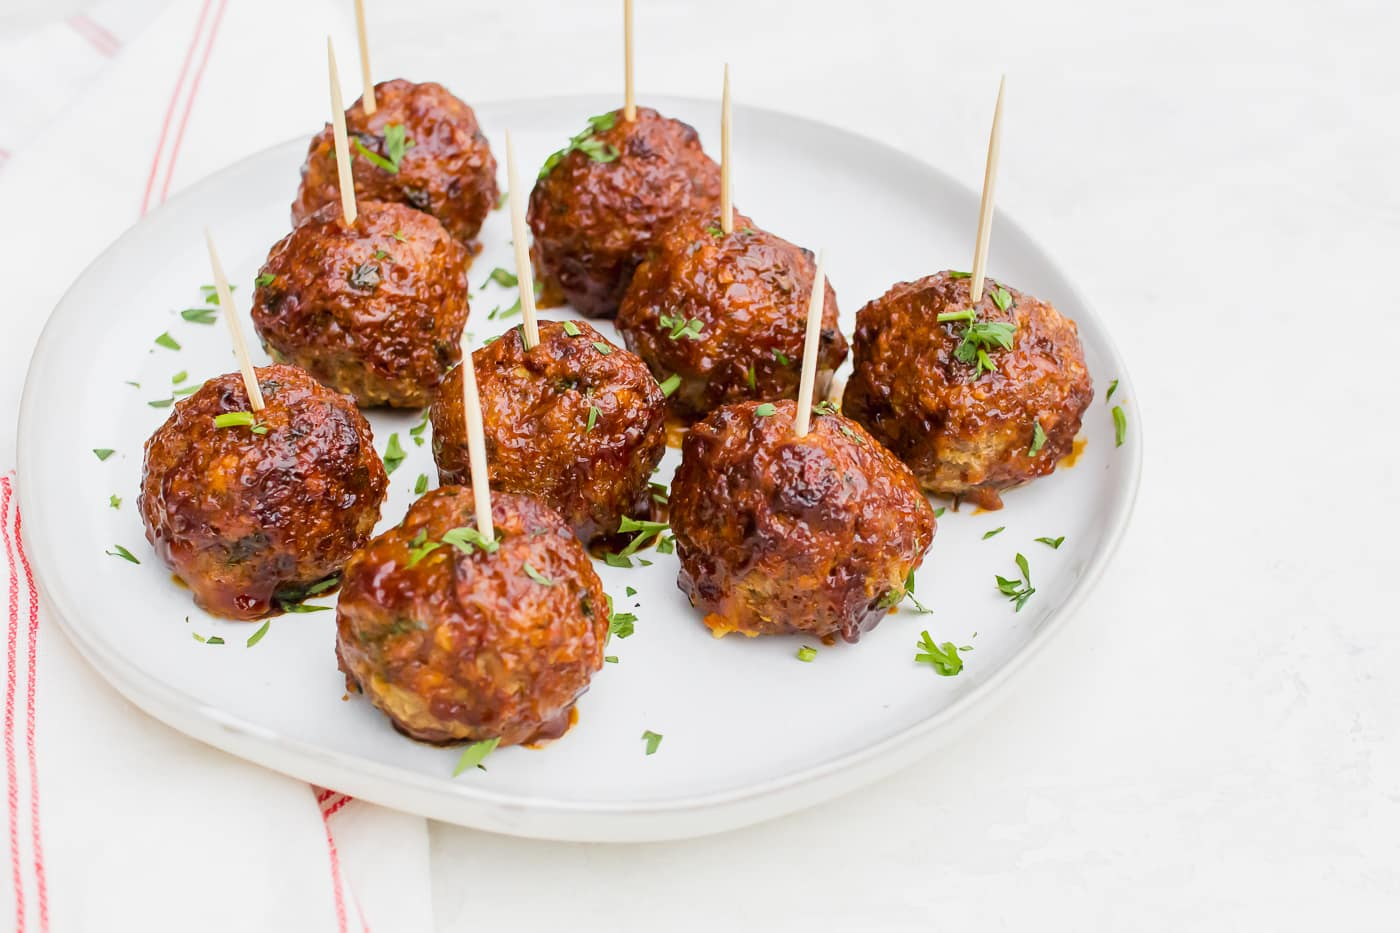 skewered meatballs with a brown glaze and fresh parsley on a bright white round plate